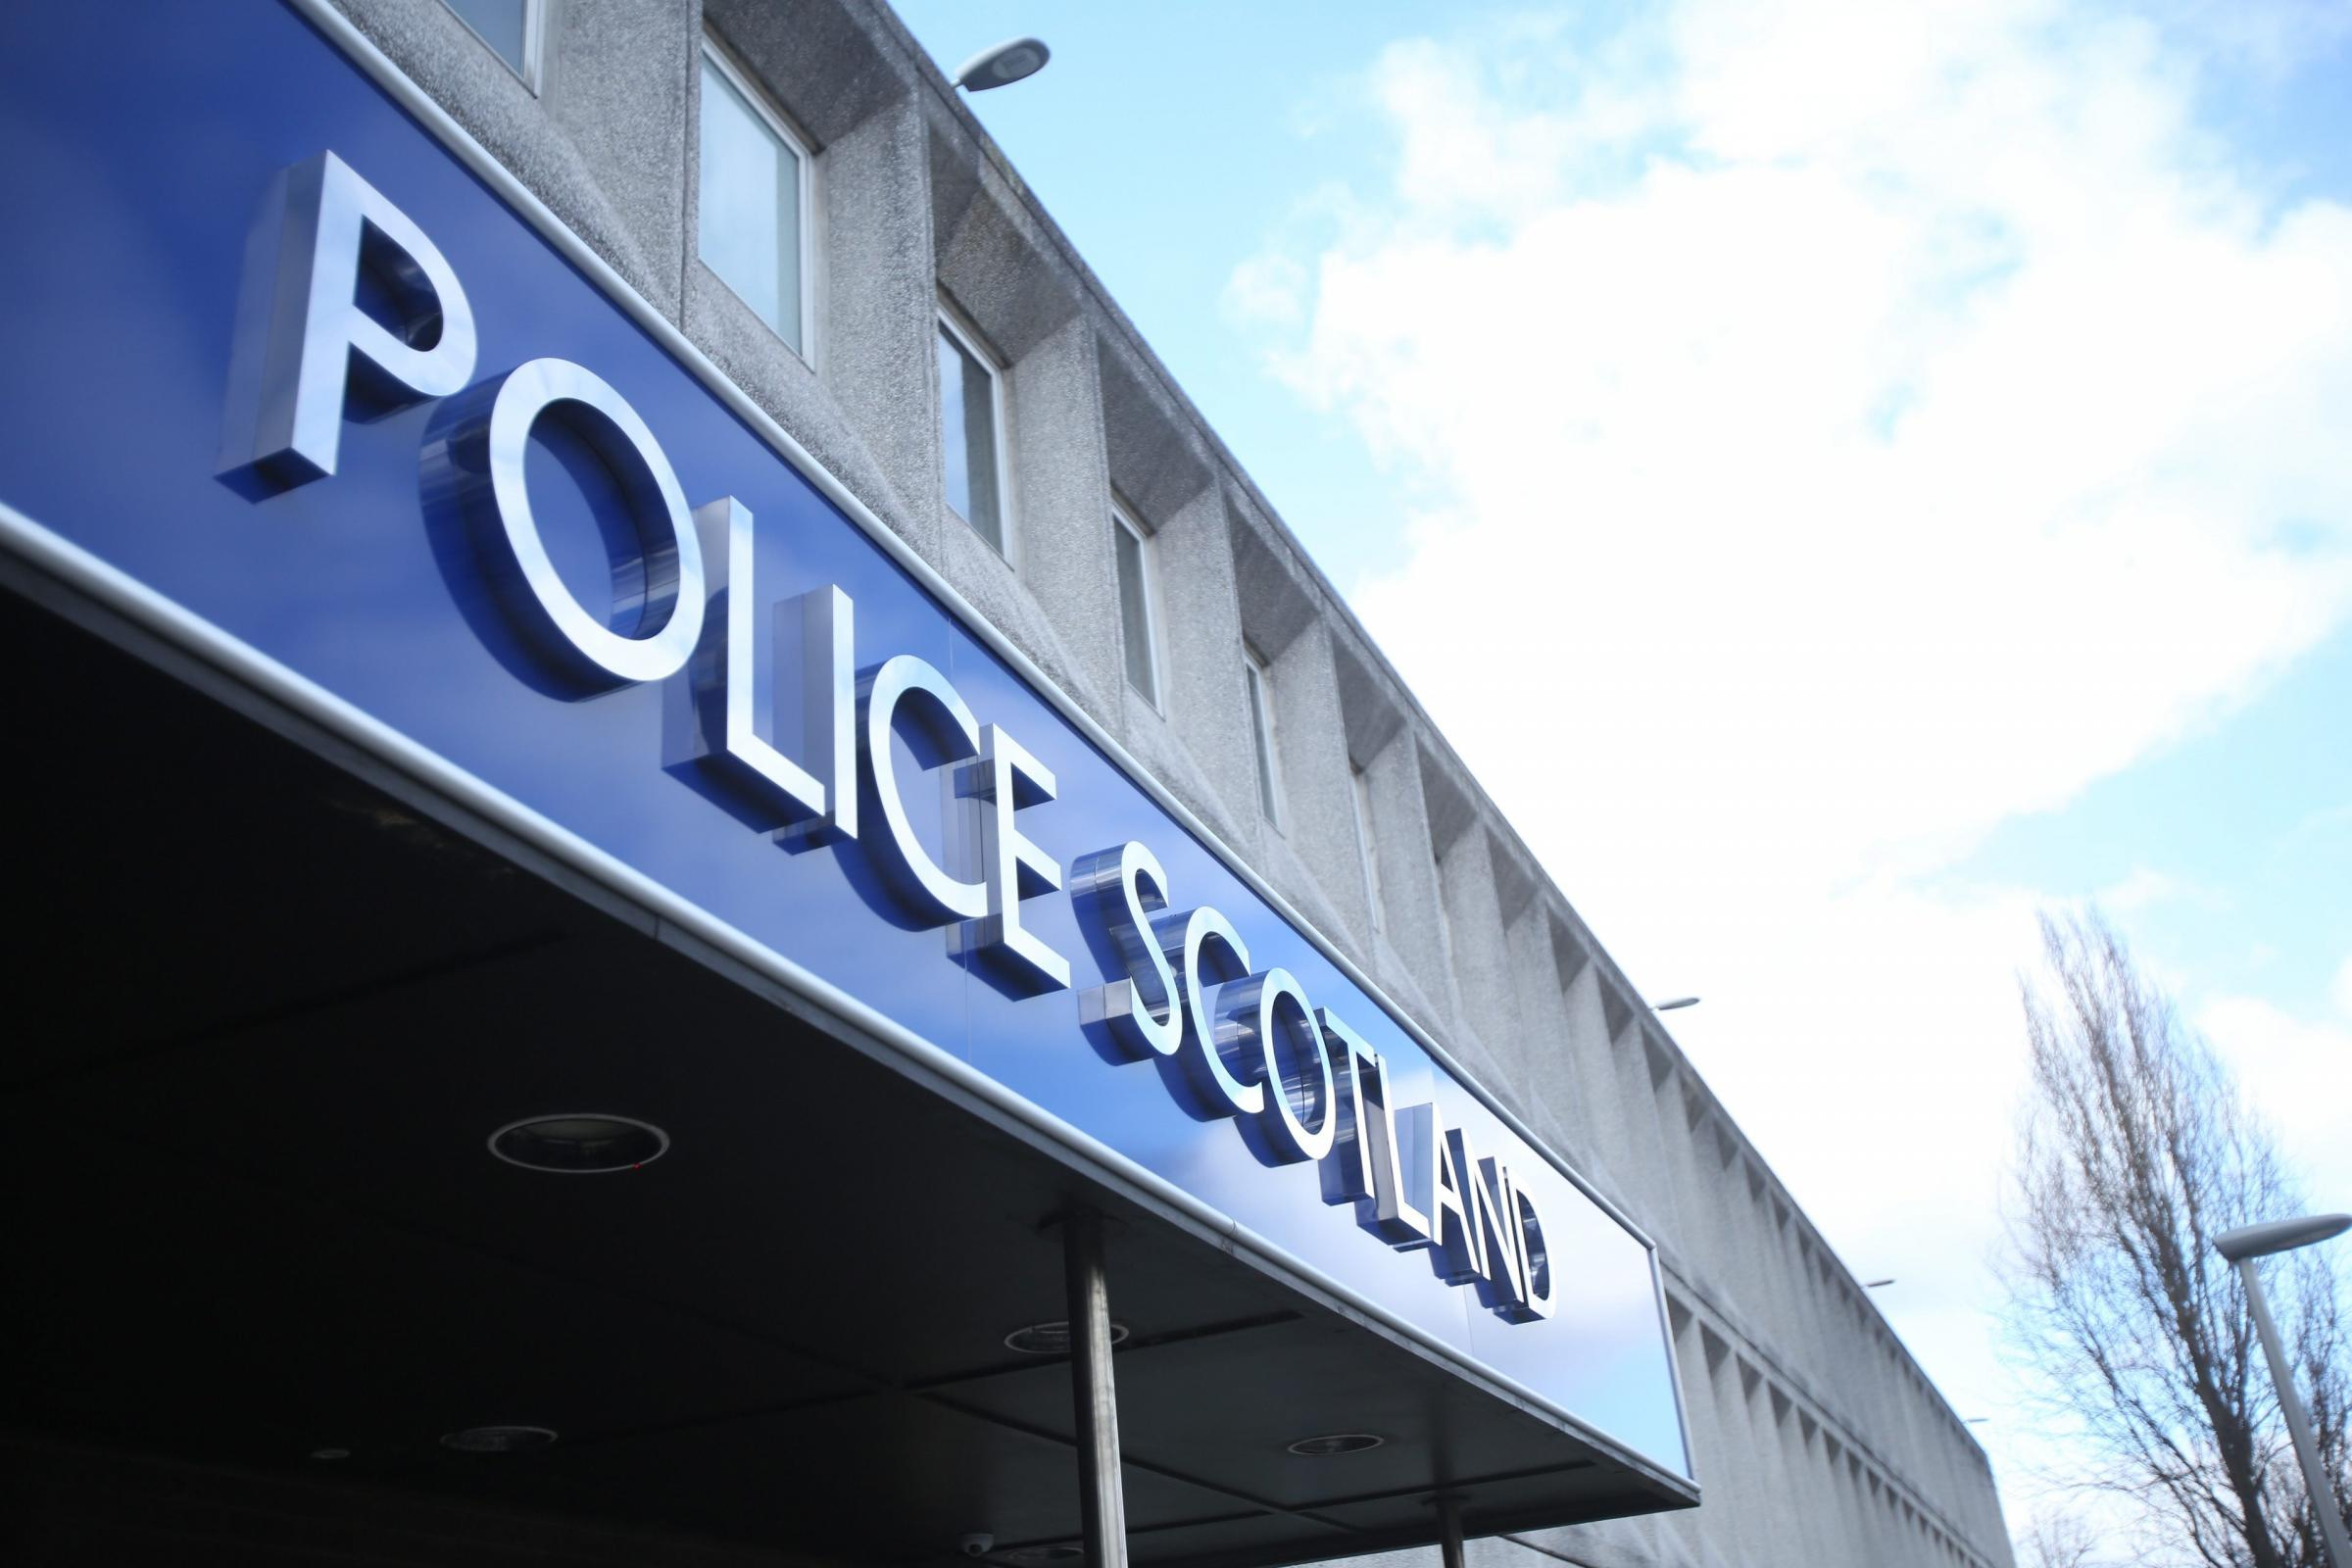 Stirling - March 30: A general view of the new Police Scotland sign outside the Stirling Police HQ March 30, 2013 in Stirling. (Photo by Mark Mainz).